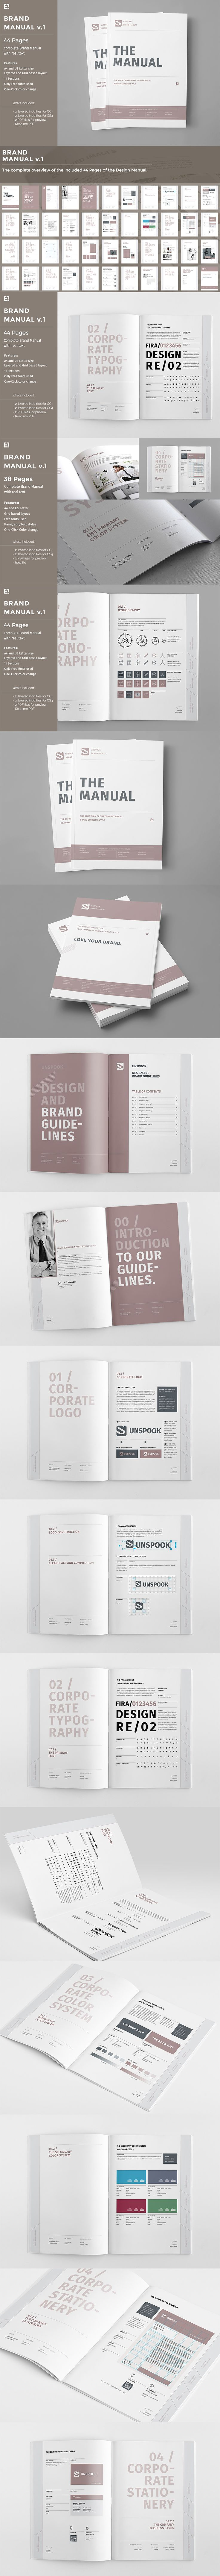 found by hedviggen ⚓️ on pinterest |  editorial design | pages | layout | natural paper | print | book binding The Modern Designer's Bundle